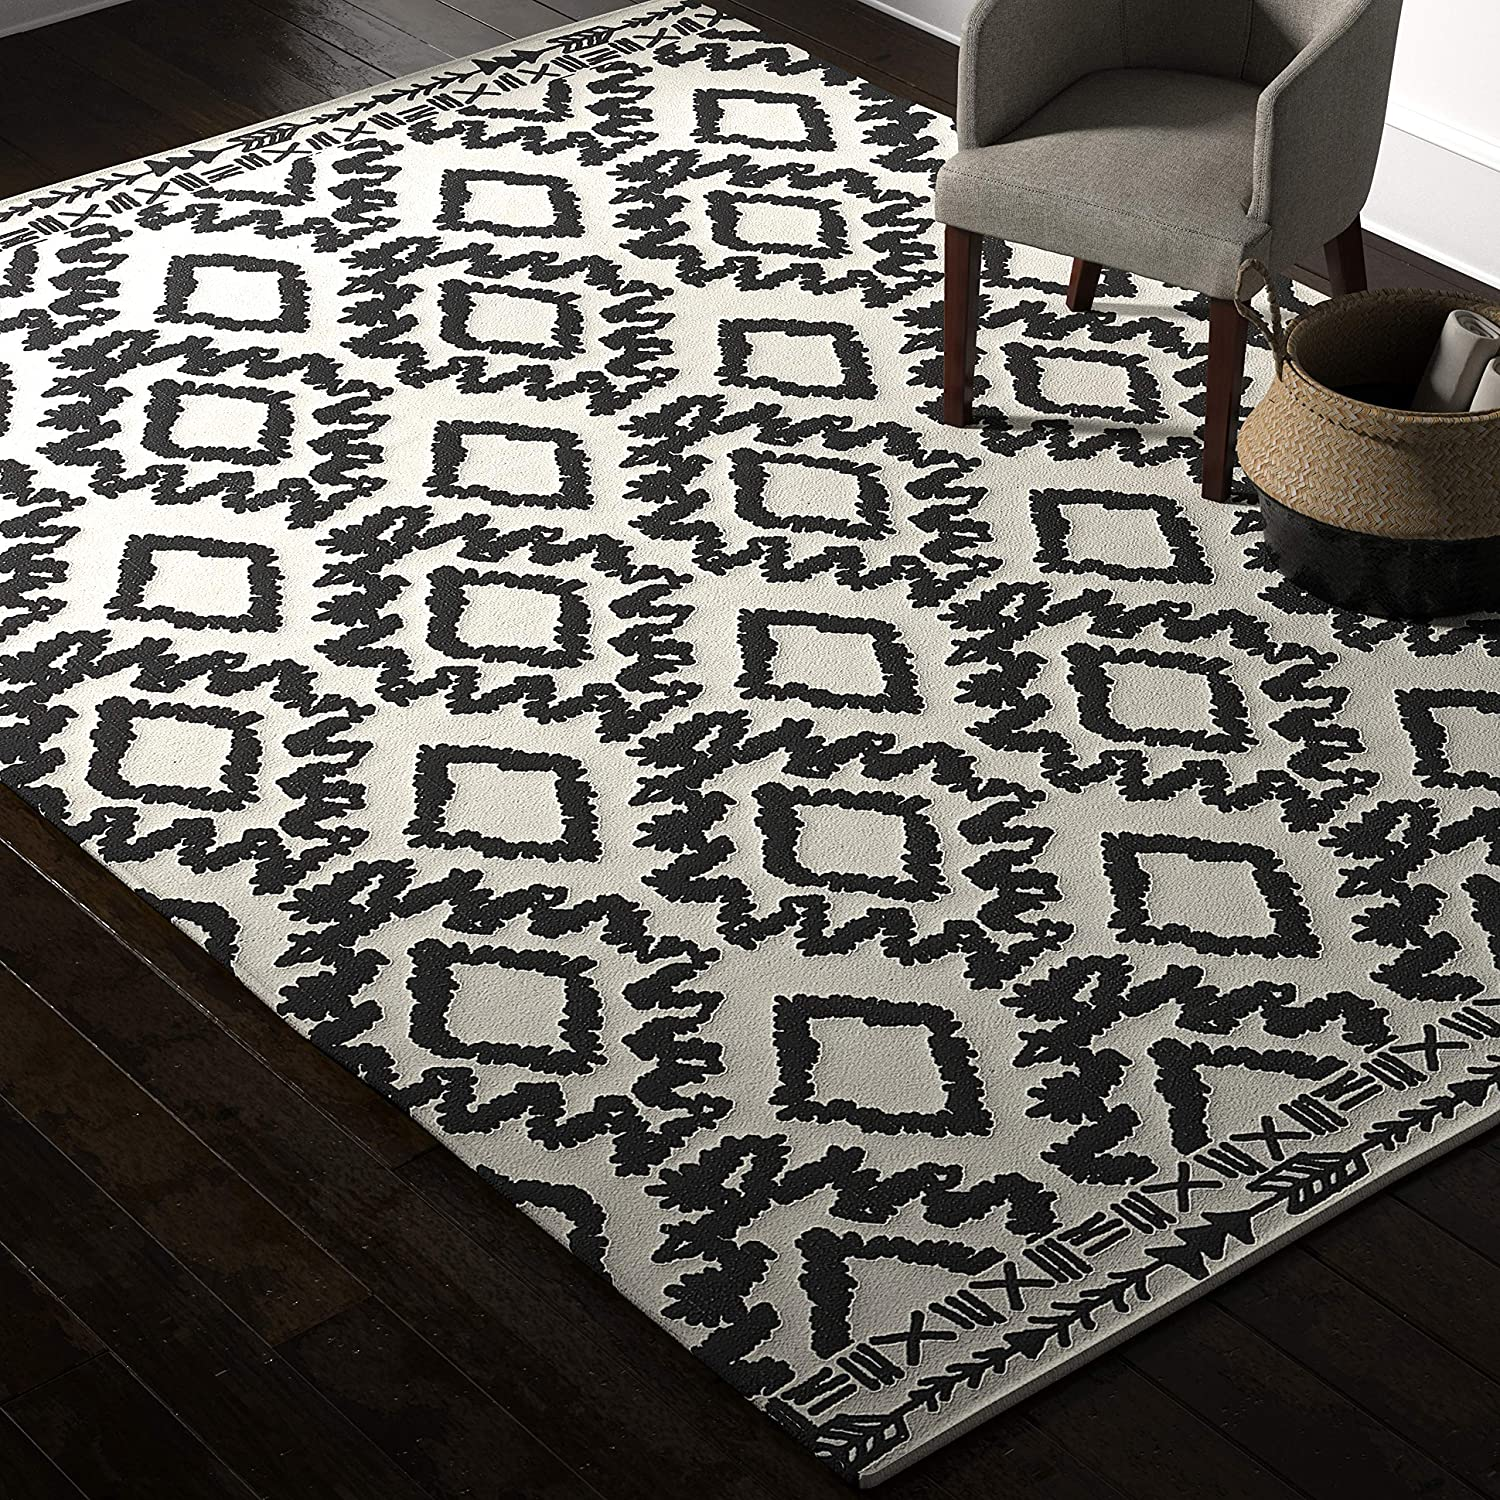 Amazon Brand – Rivet Black and Ivory Global Print Cotton Area Rug, 8 x 11 Foot